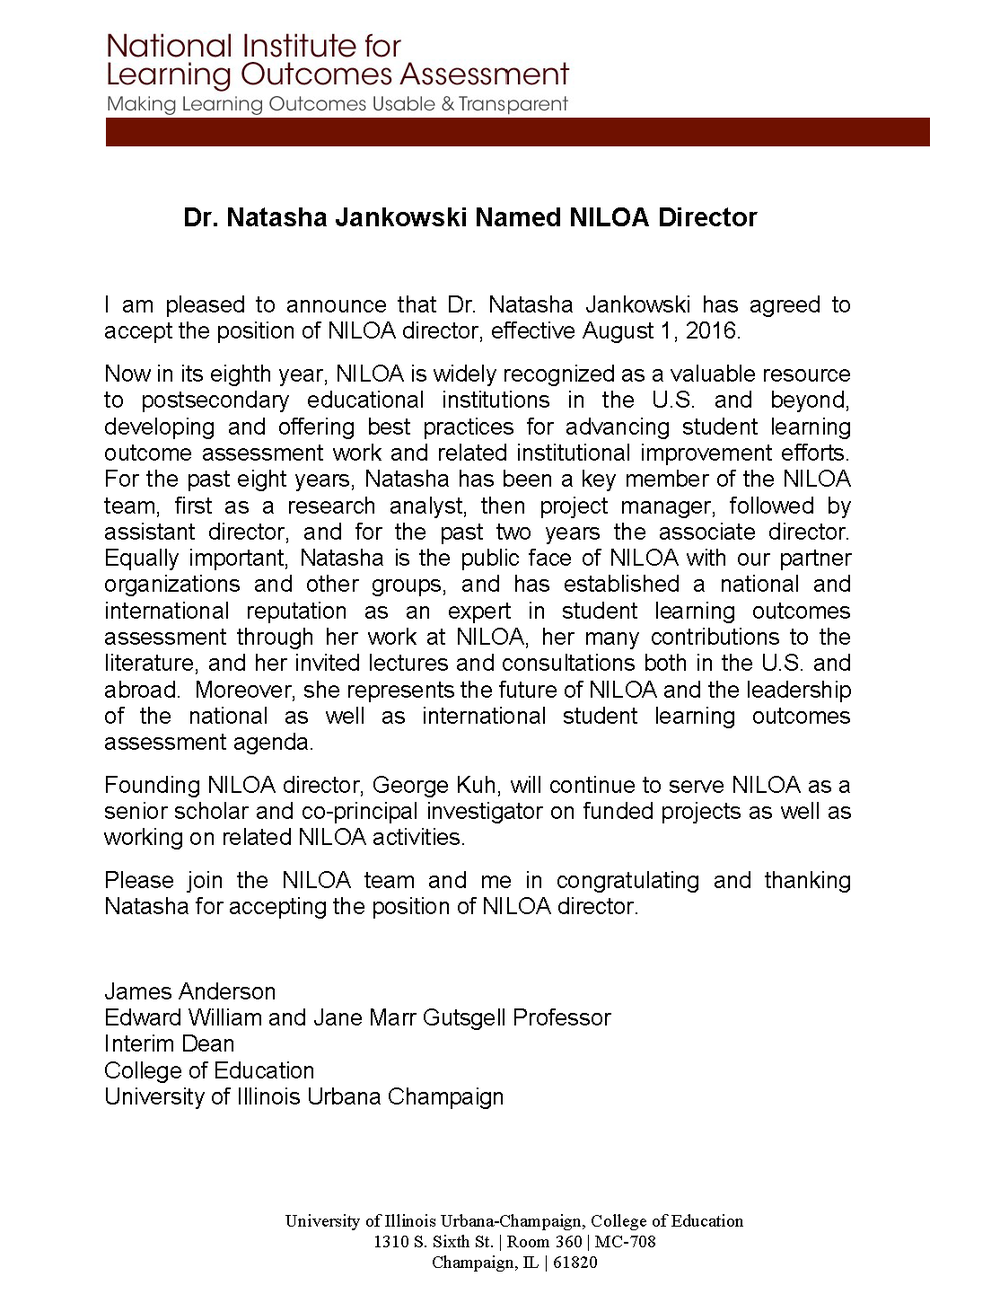 niloa newsletter we are pleased to announce that dr natasha jankowski has agreed to accept the position of niloa director for the past eight years natasha has been a key